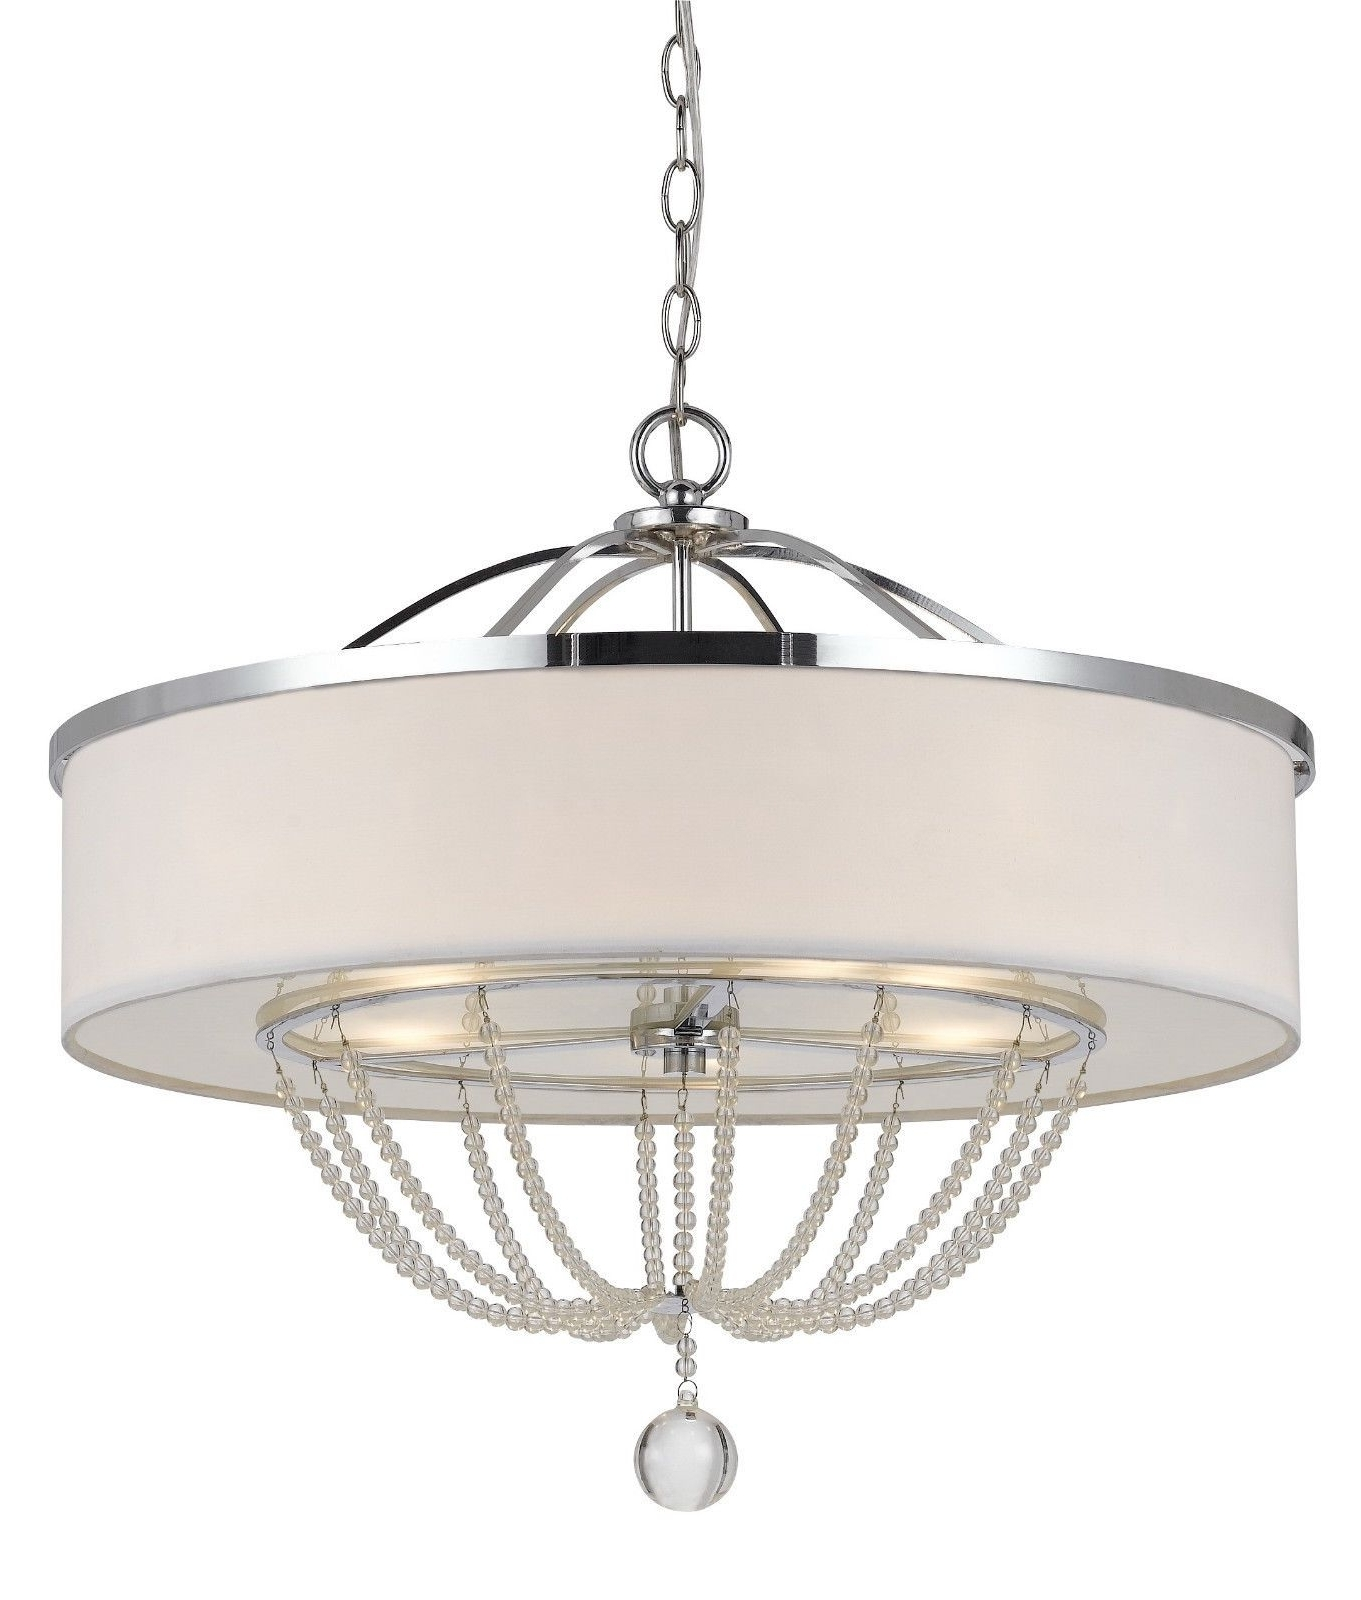 Famous Modern White Fabric With Chrome Metal & Crystals Drum Pendant Light With Modern Chrome Chandeliers (View 5 of 15)